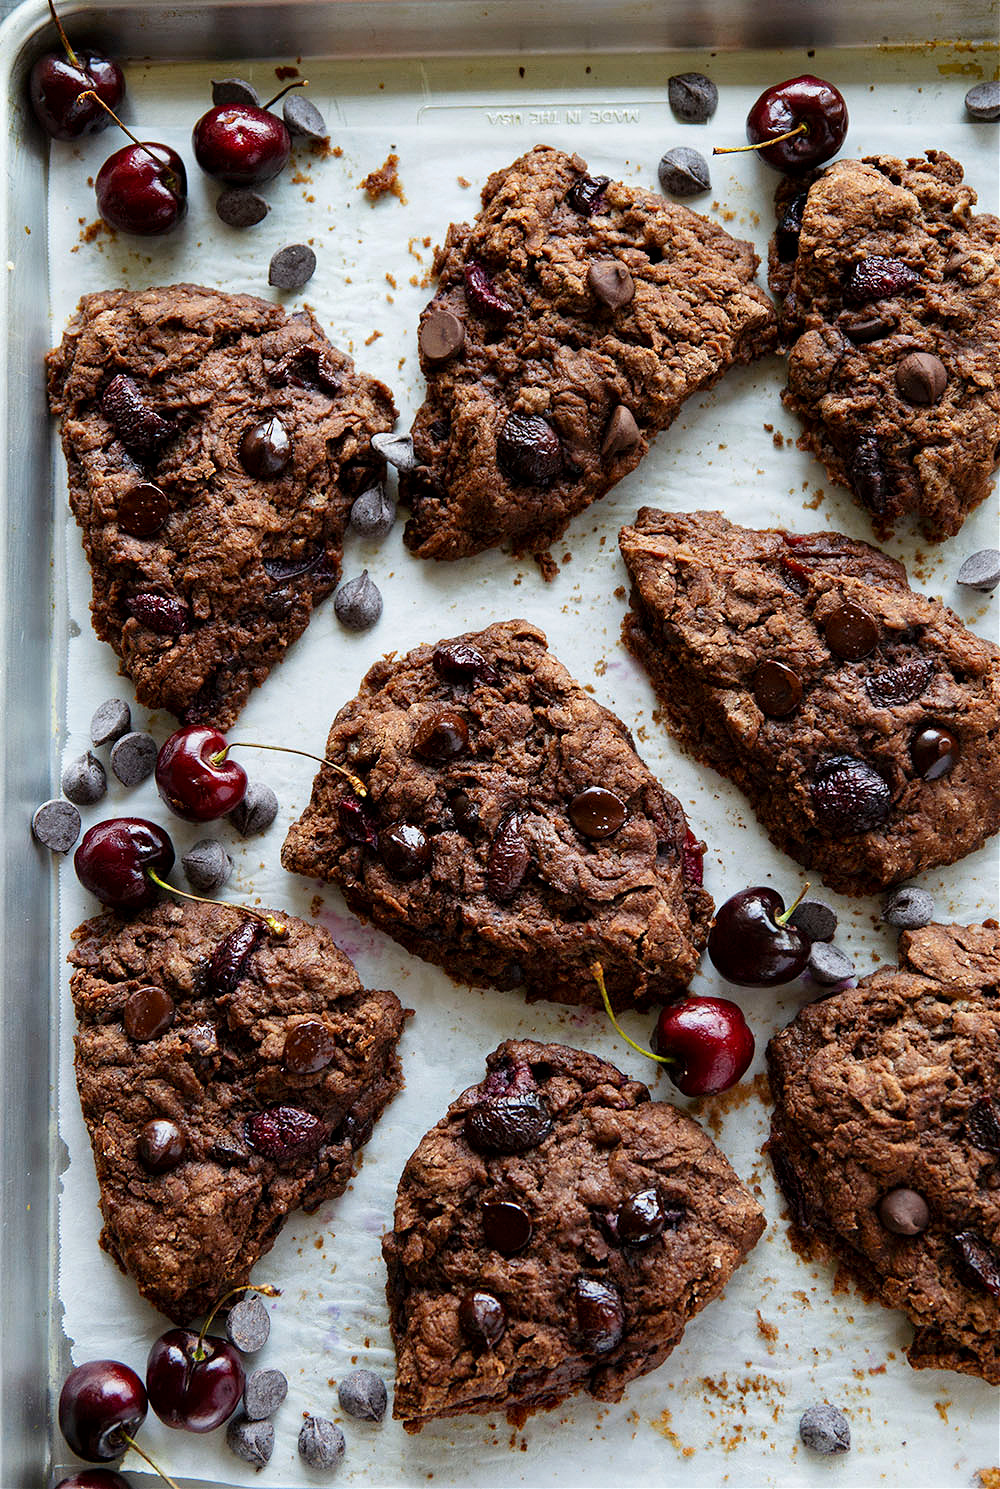 Packed with a double whammy of rich chocolate and juicy sweet cherries, these double chocolate cherry scones are almost brownie-like in texture and a favorite indulgent breakfast!